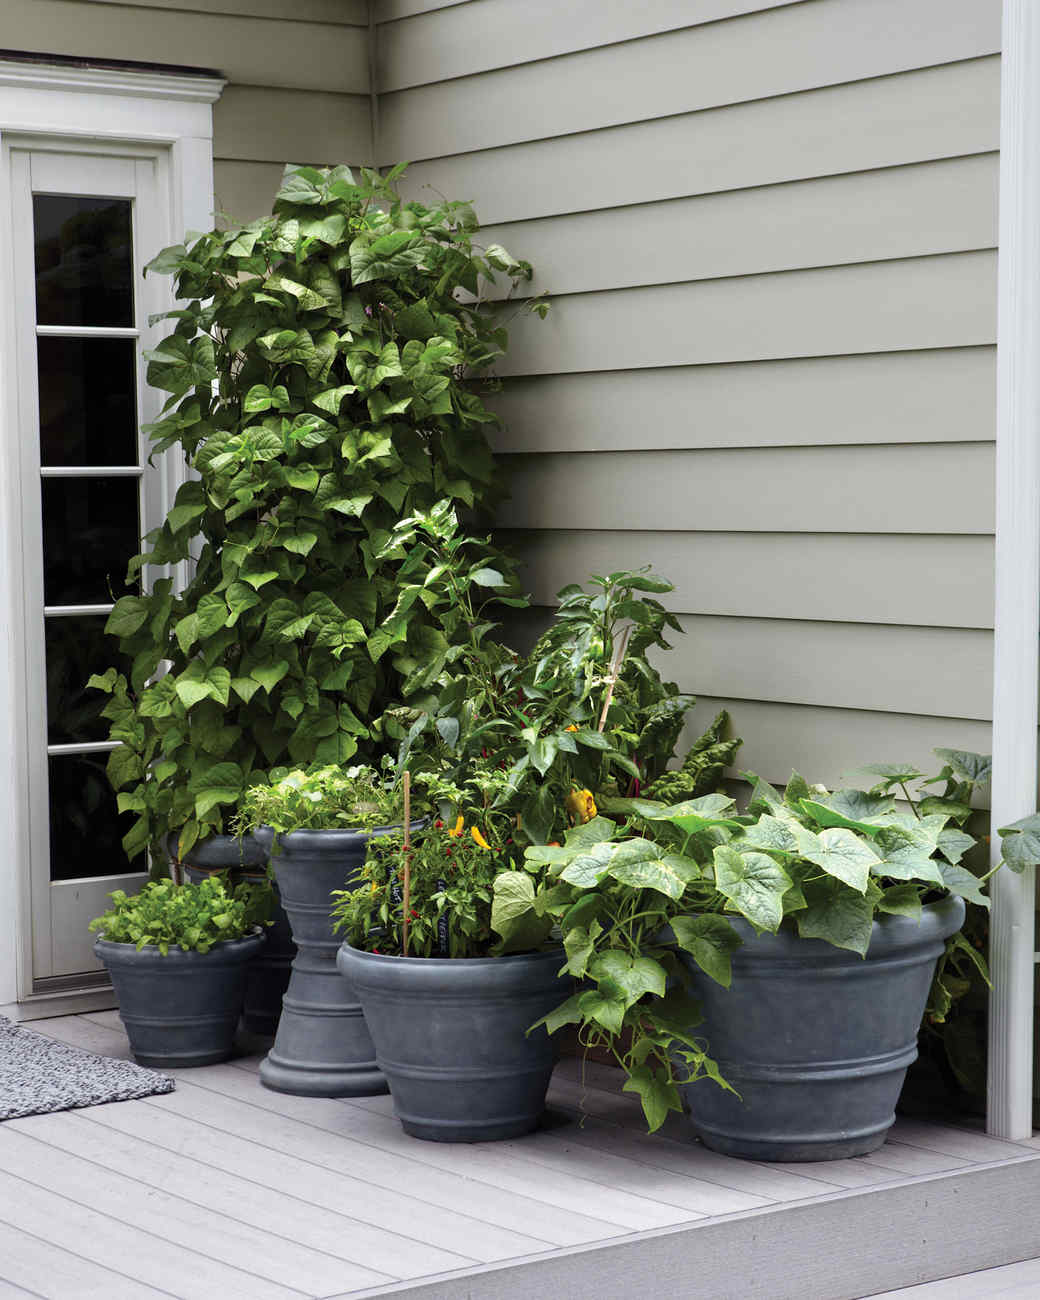 Small space garden ideas martha stewart for Garden space ideas